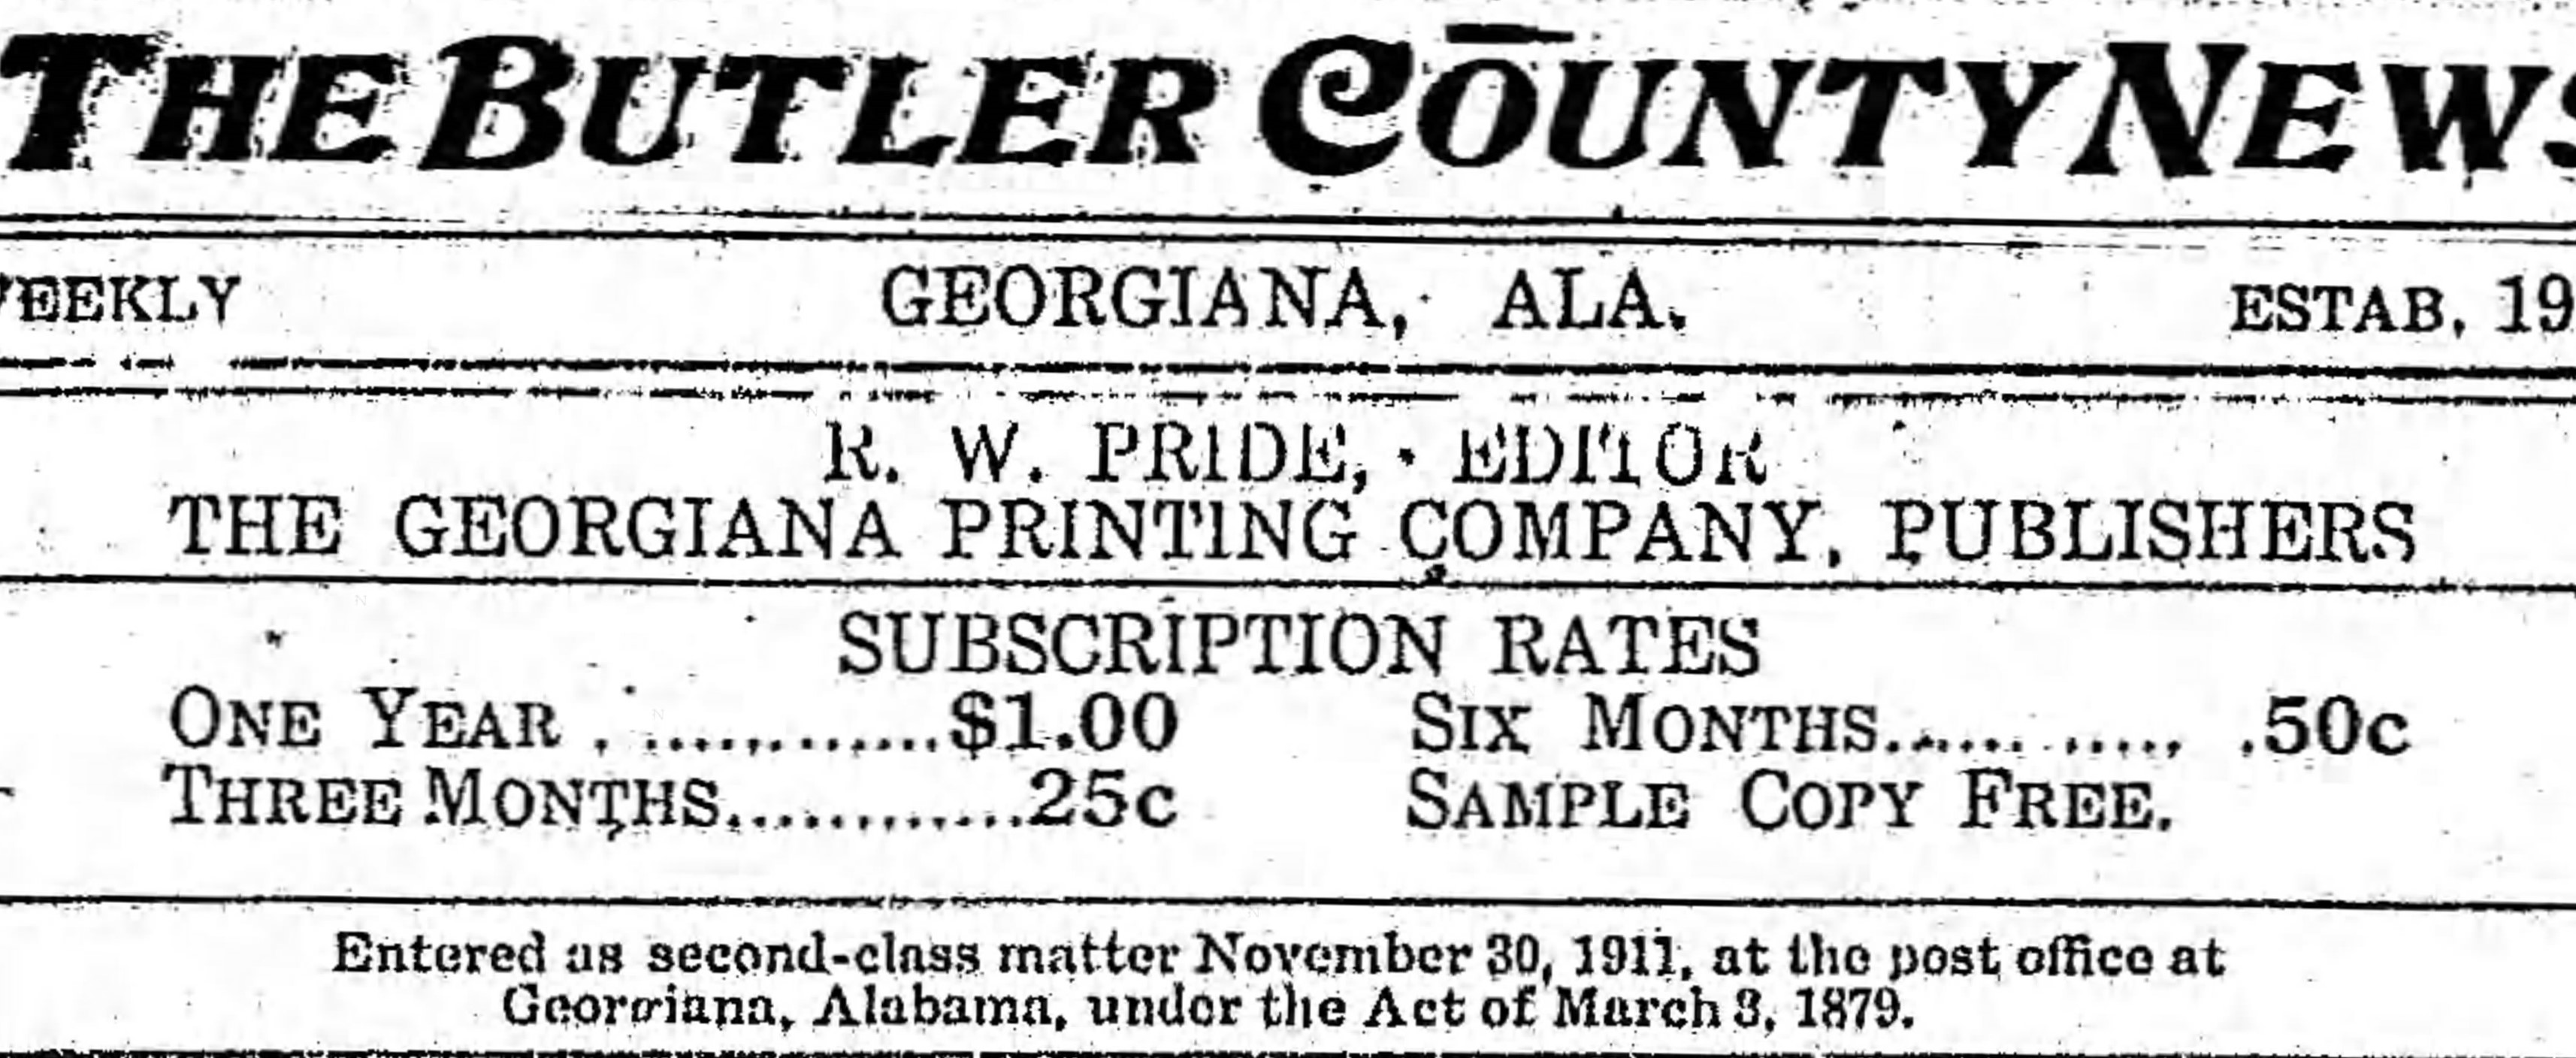 PATRON – The Butler County News – Local and Personal in 1914 include news of marriage, rattlesnakes, election, and watermelon prize winner